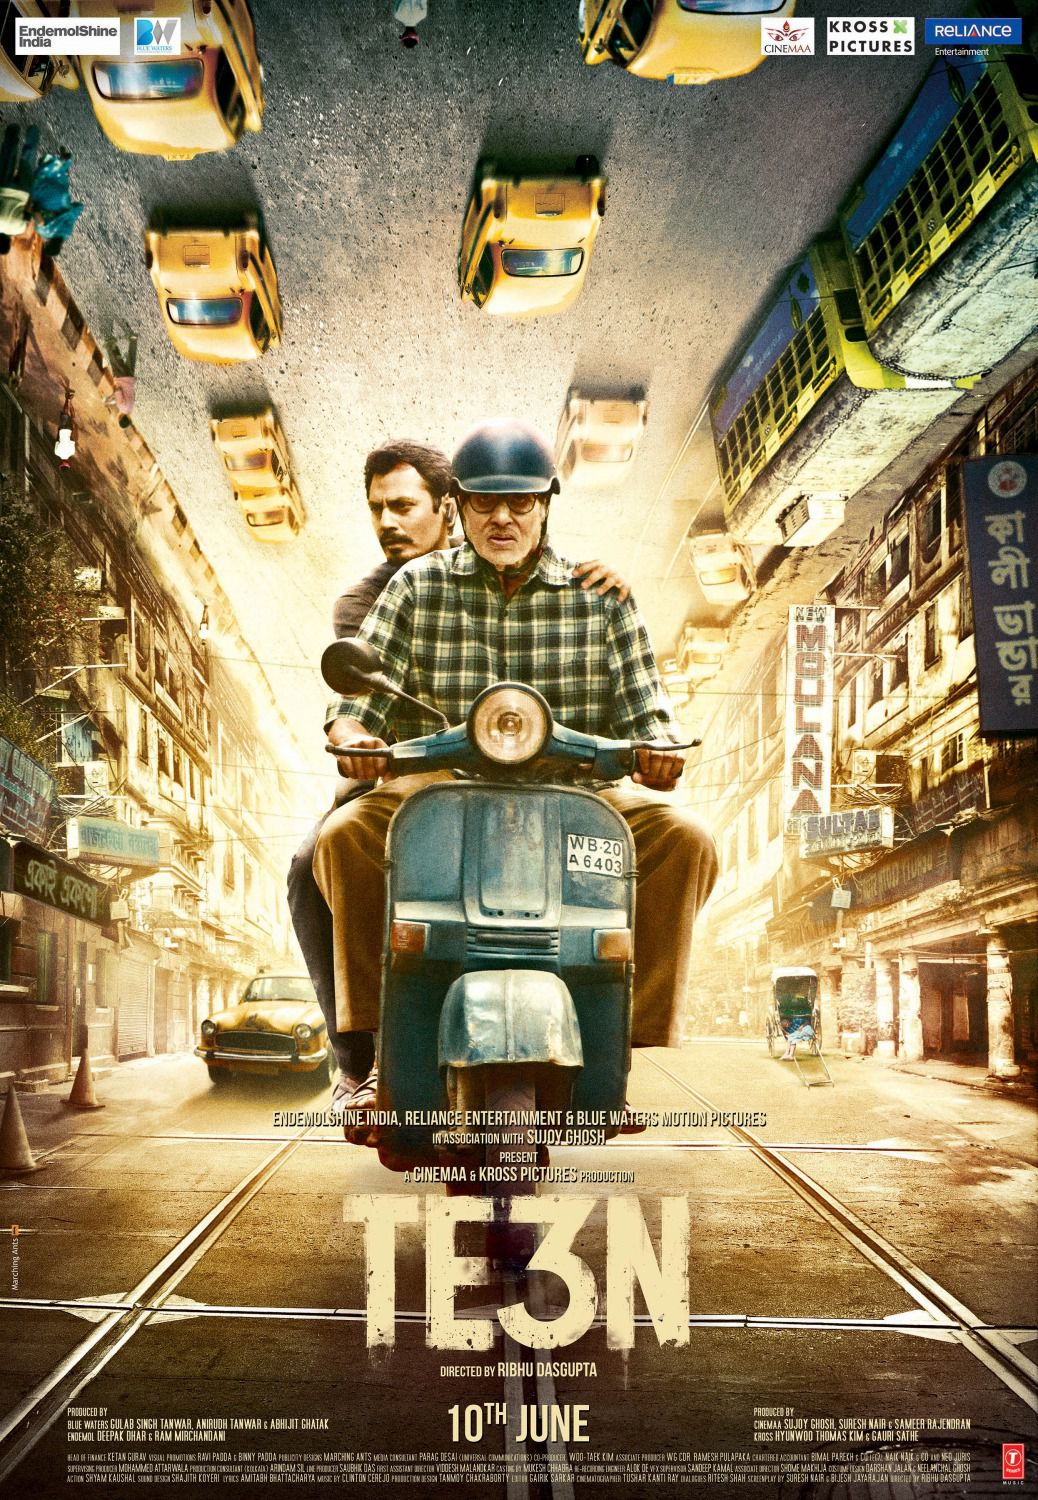 Te3n - film poster g2 time space city yellow cabs